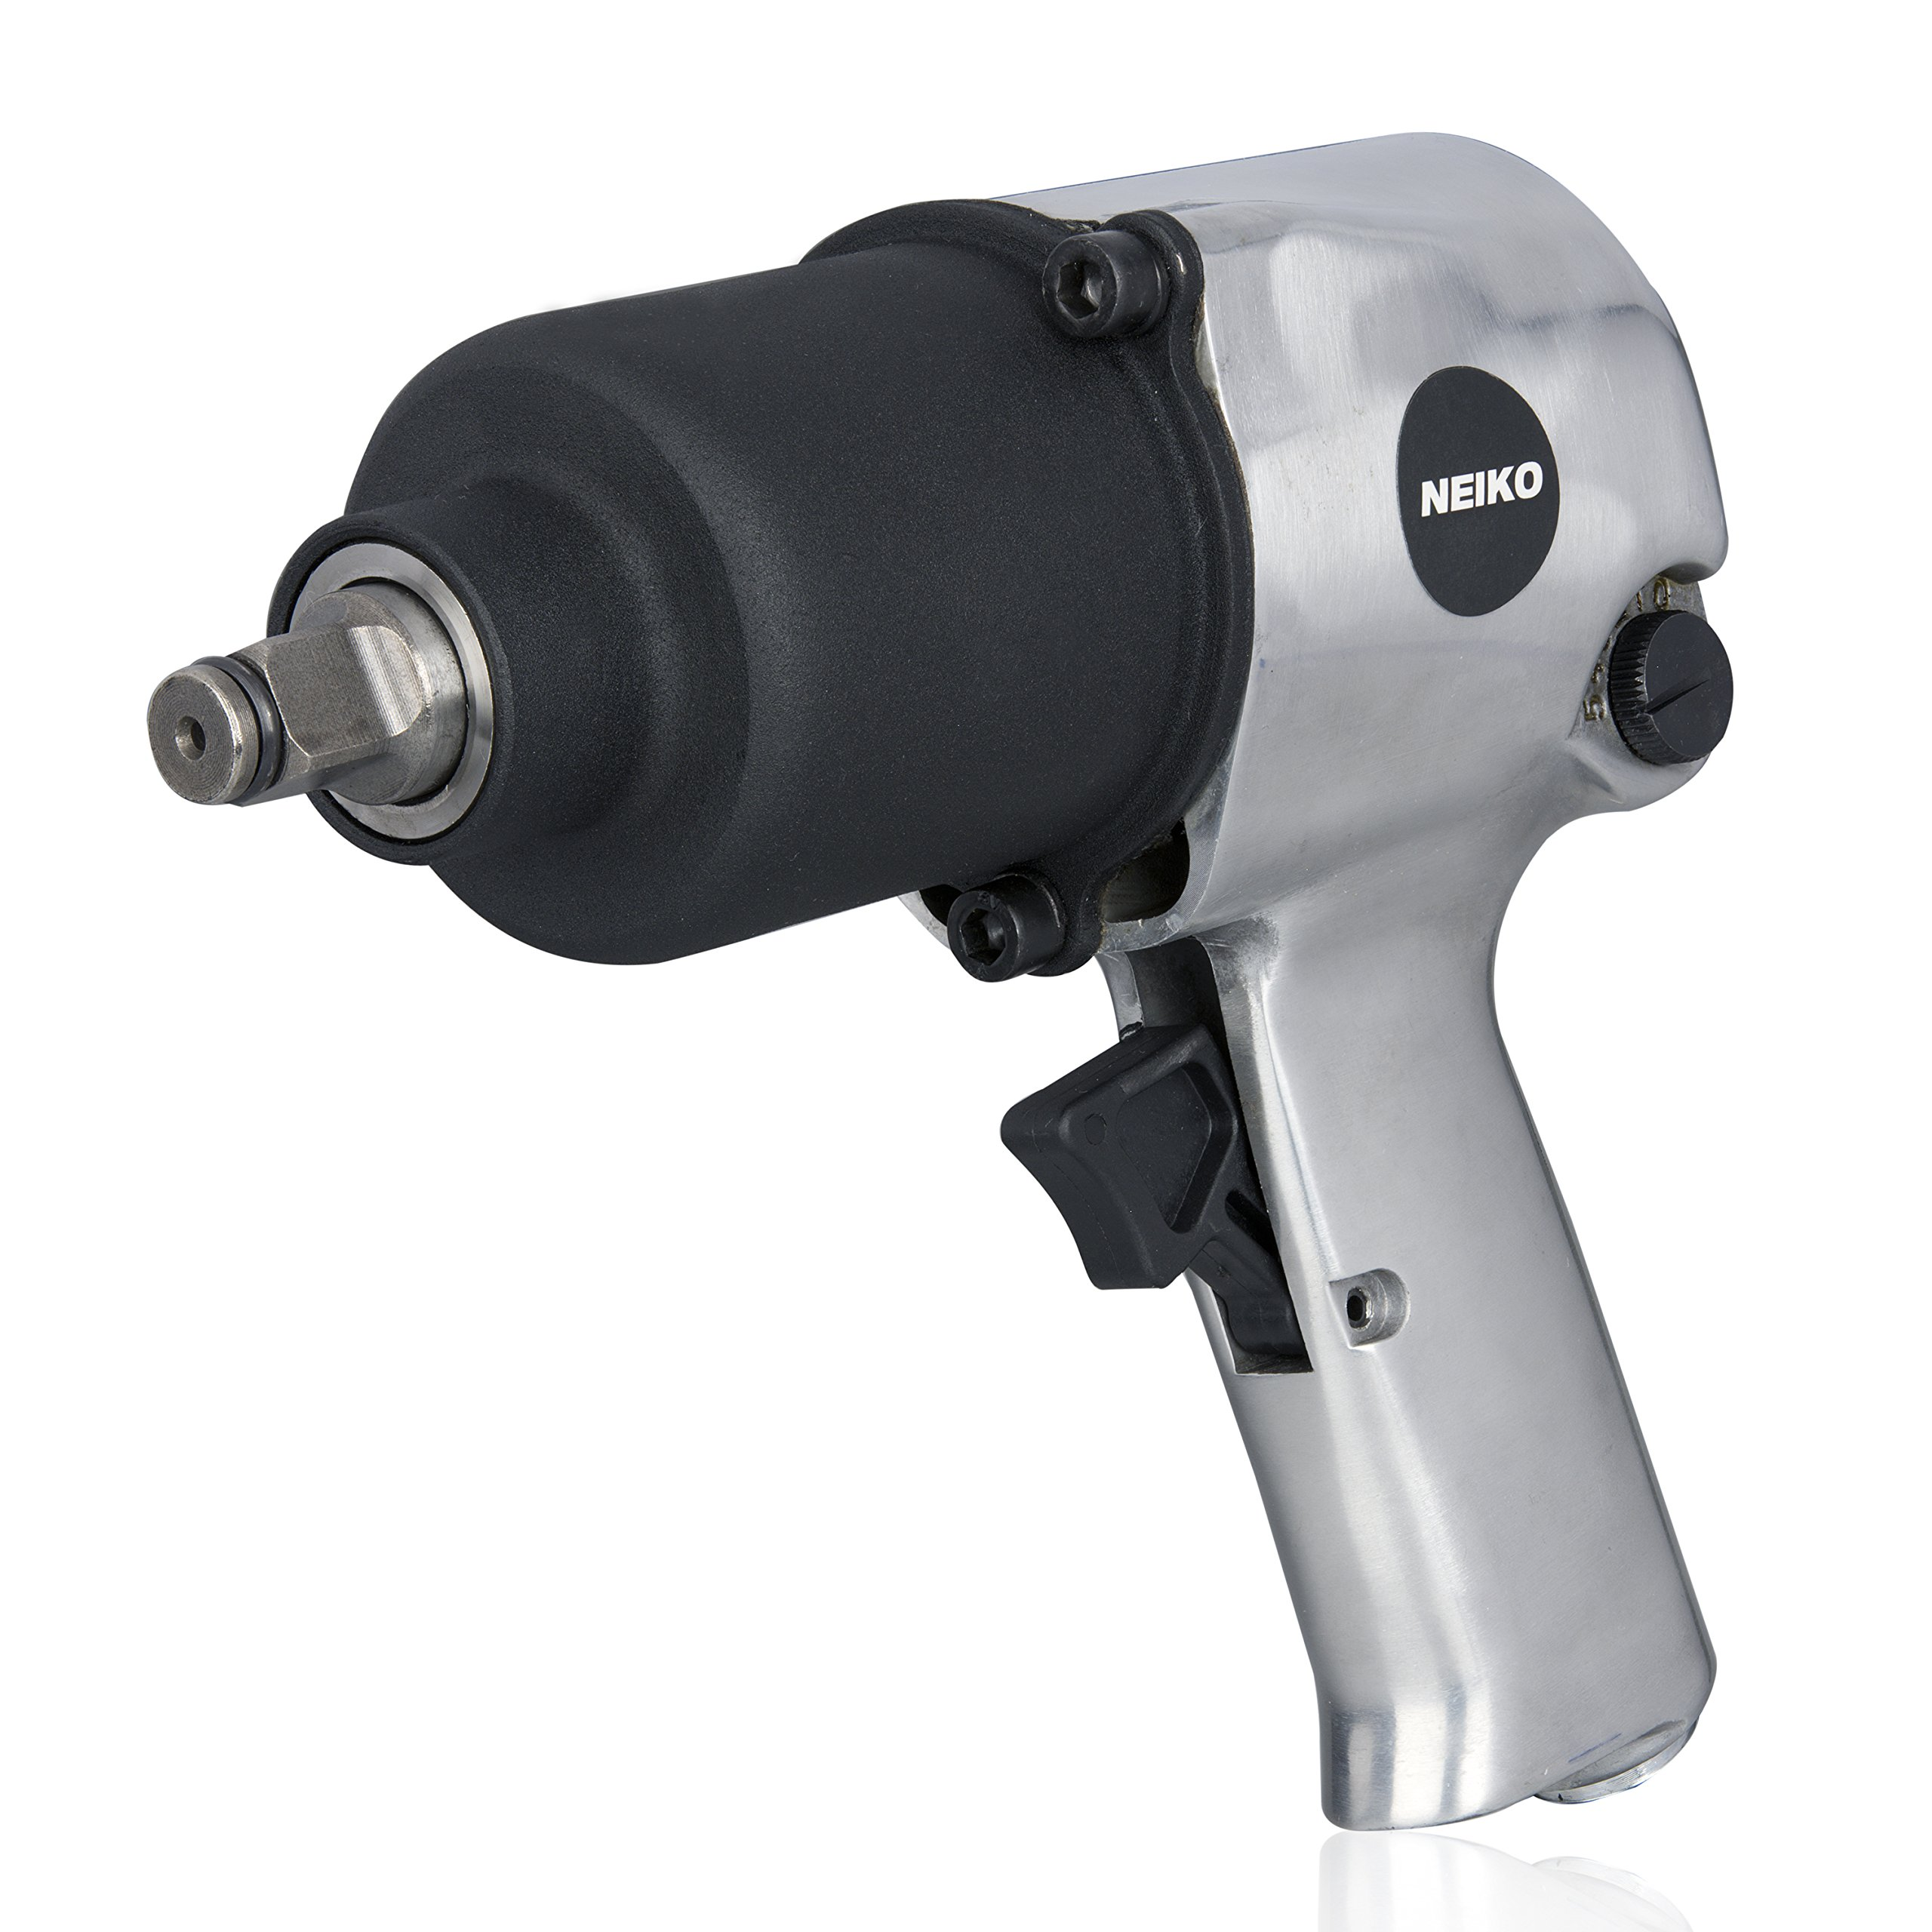 Neiko 31390A Short Shank Twin Hammer Impact Wrench, 1/2'' Drive | Reversible & Adjustable Torque | 530 Ft-Lb, 7500 RPM